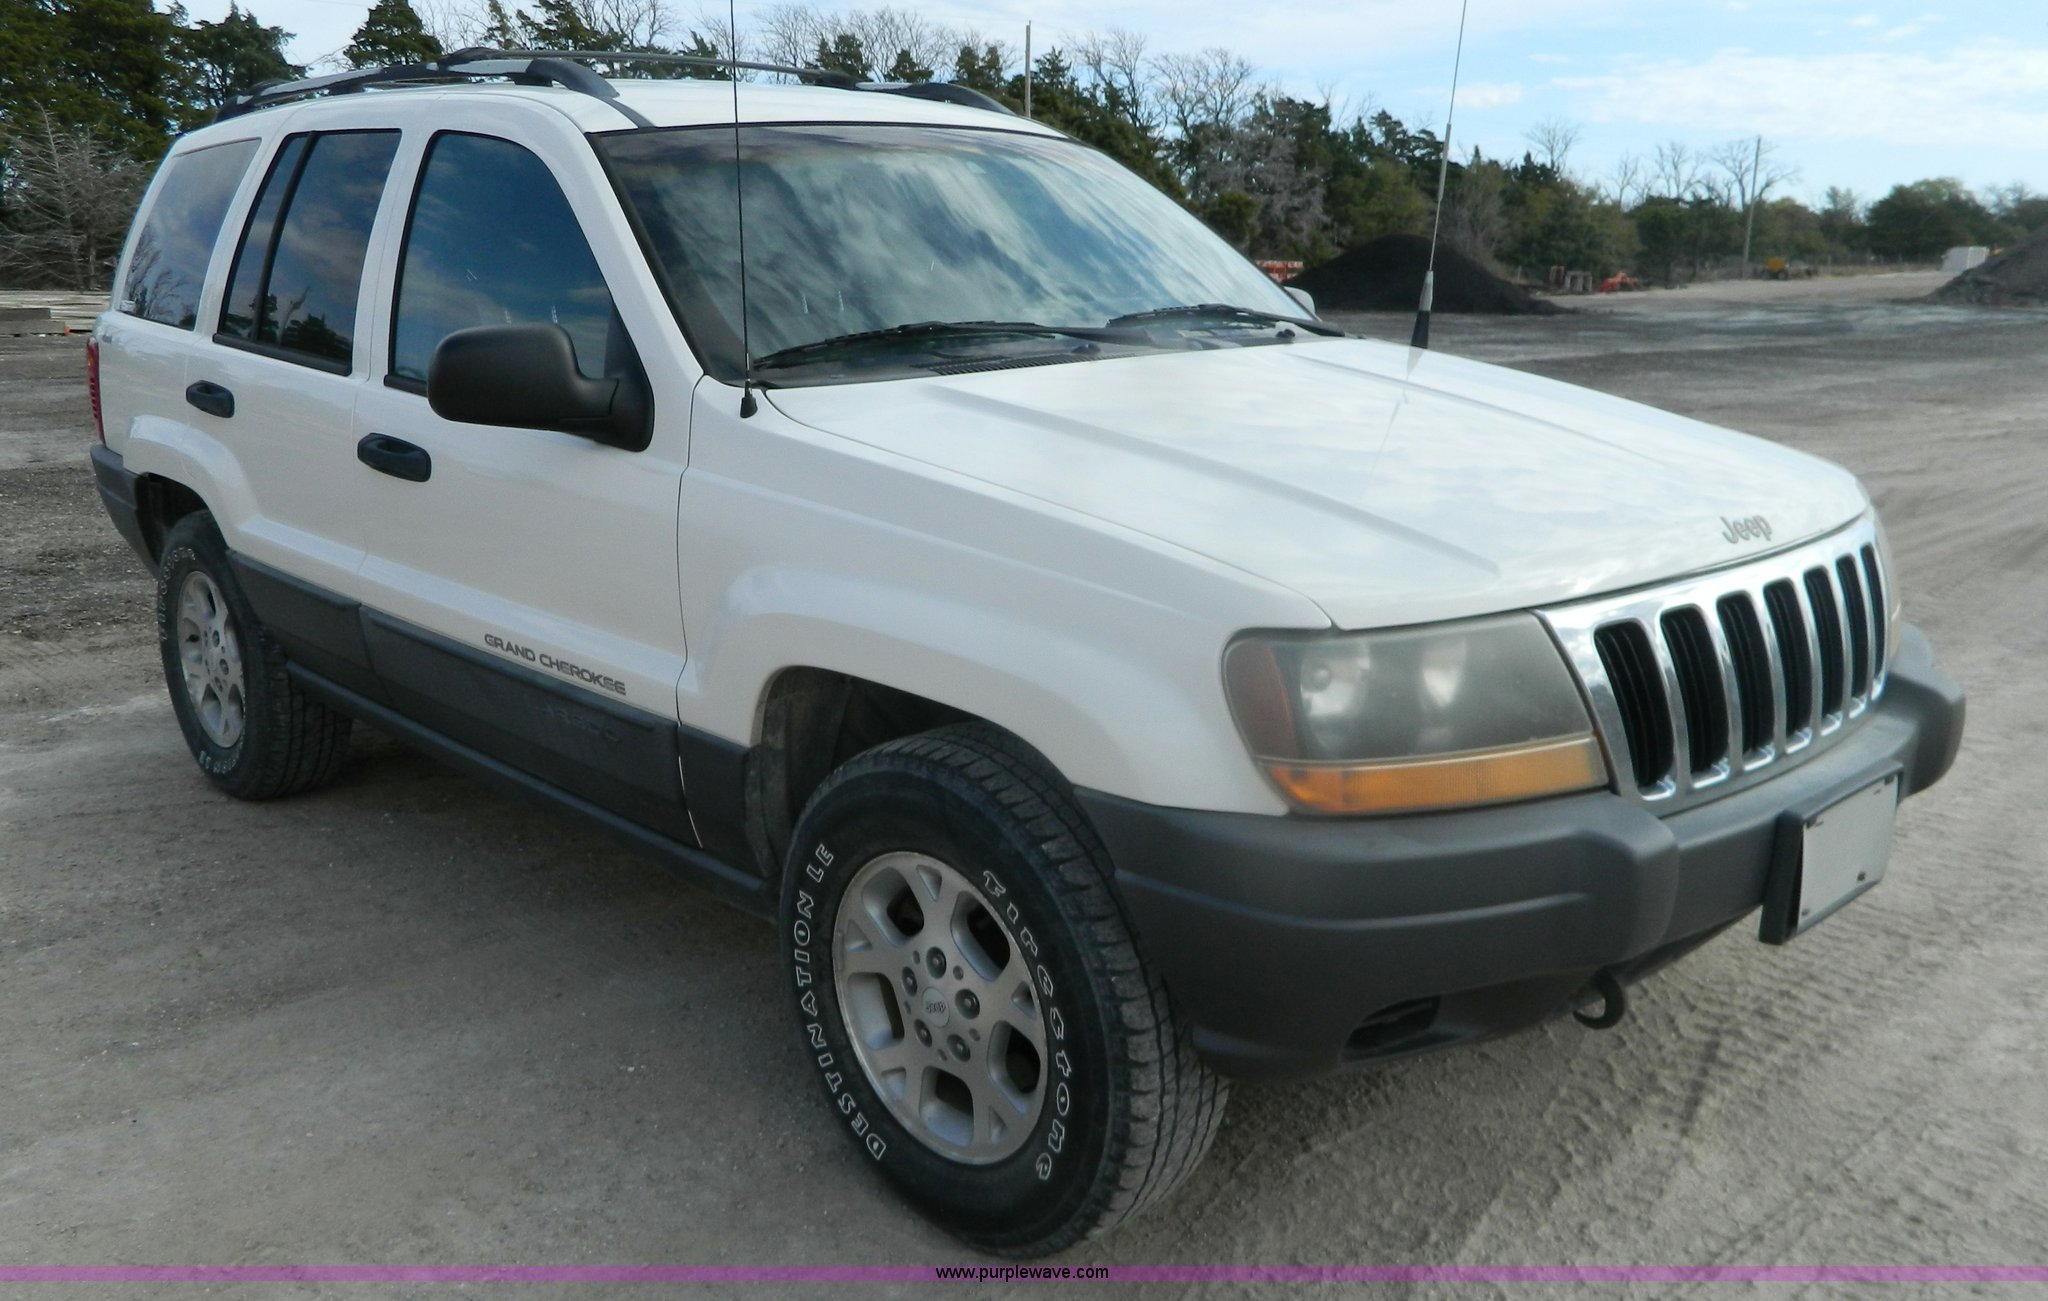 2001 Jeep Grand Cherokee Laredo Suv Item Bt9908 Sold No Fuel Filter Image For